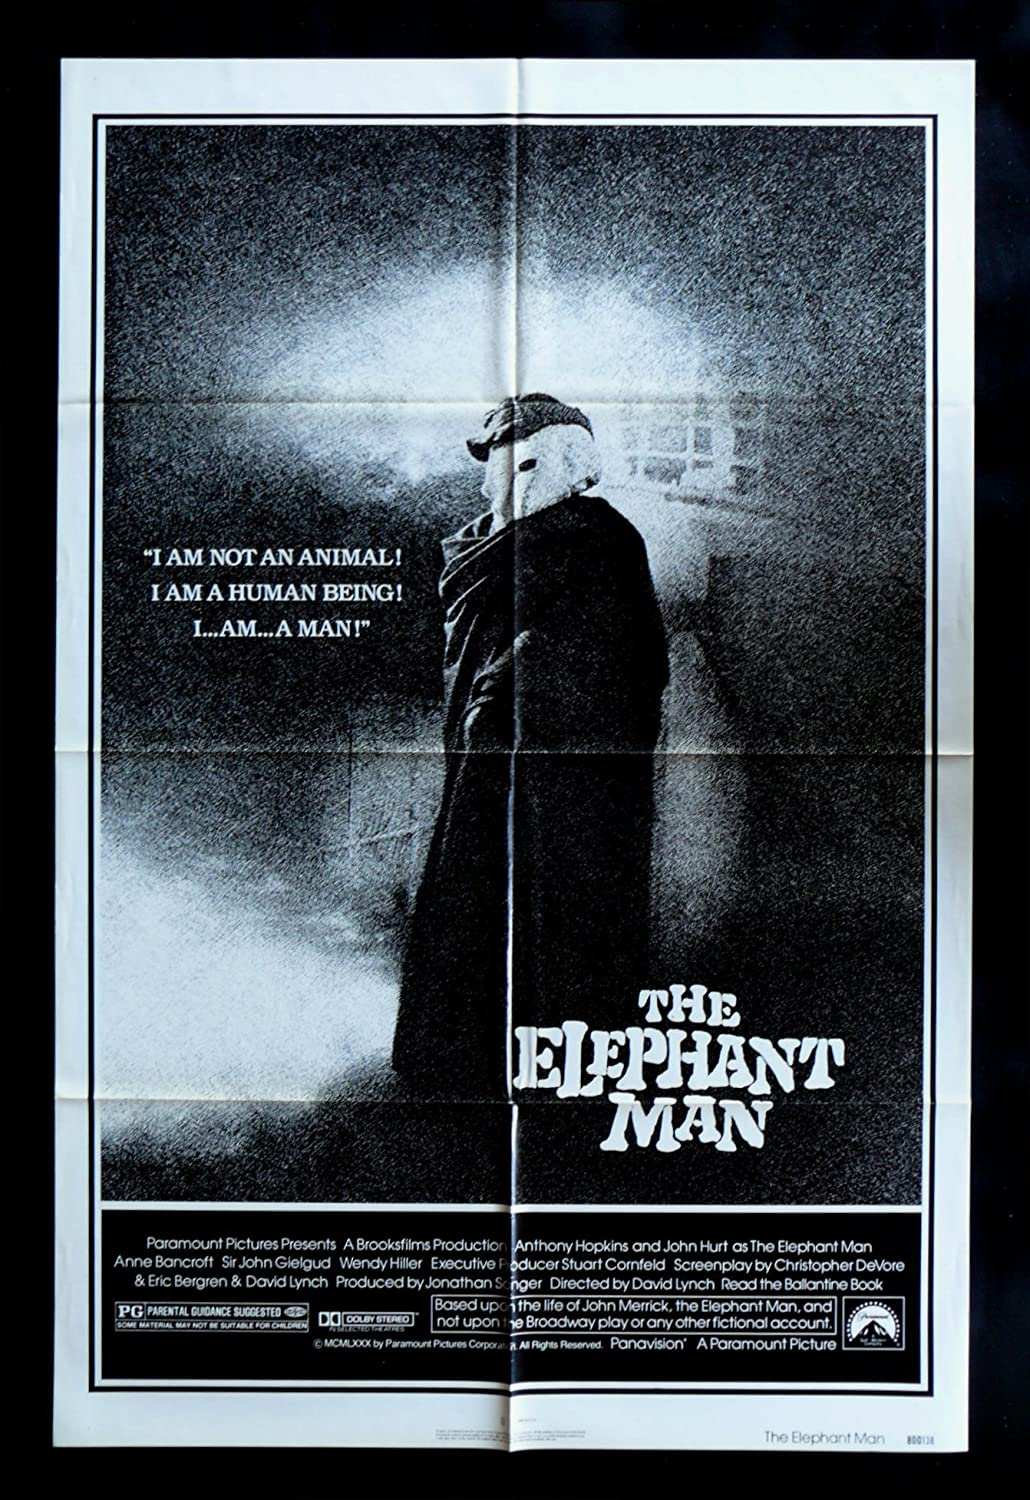 john merricks quest in the elephant man by christine sparks Buy a cheap copy of elephant man book by christine sparks john merrick had lived for more than twenty years imprisoned in a body that condemned him to a miserable life in the workhouse and to humiliation as a circus free shipping over $10.